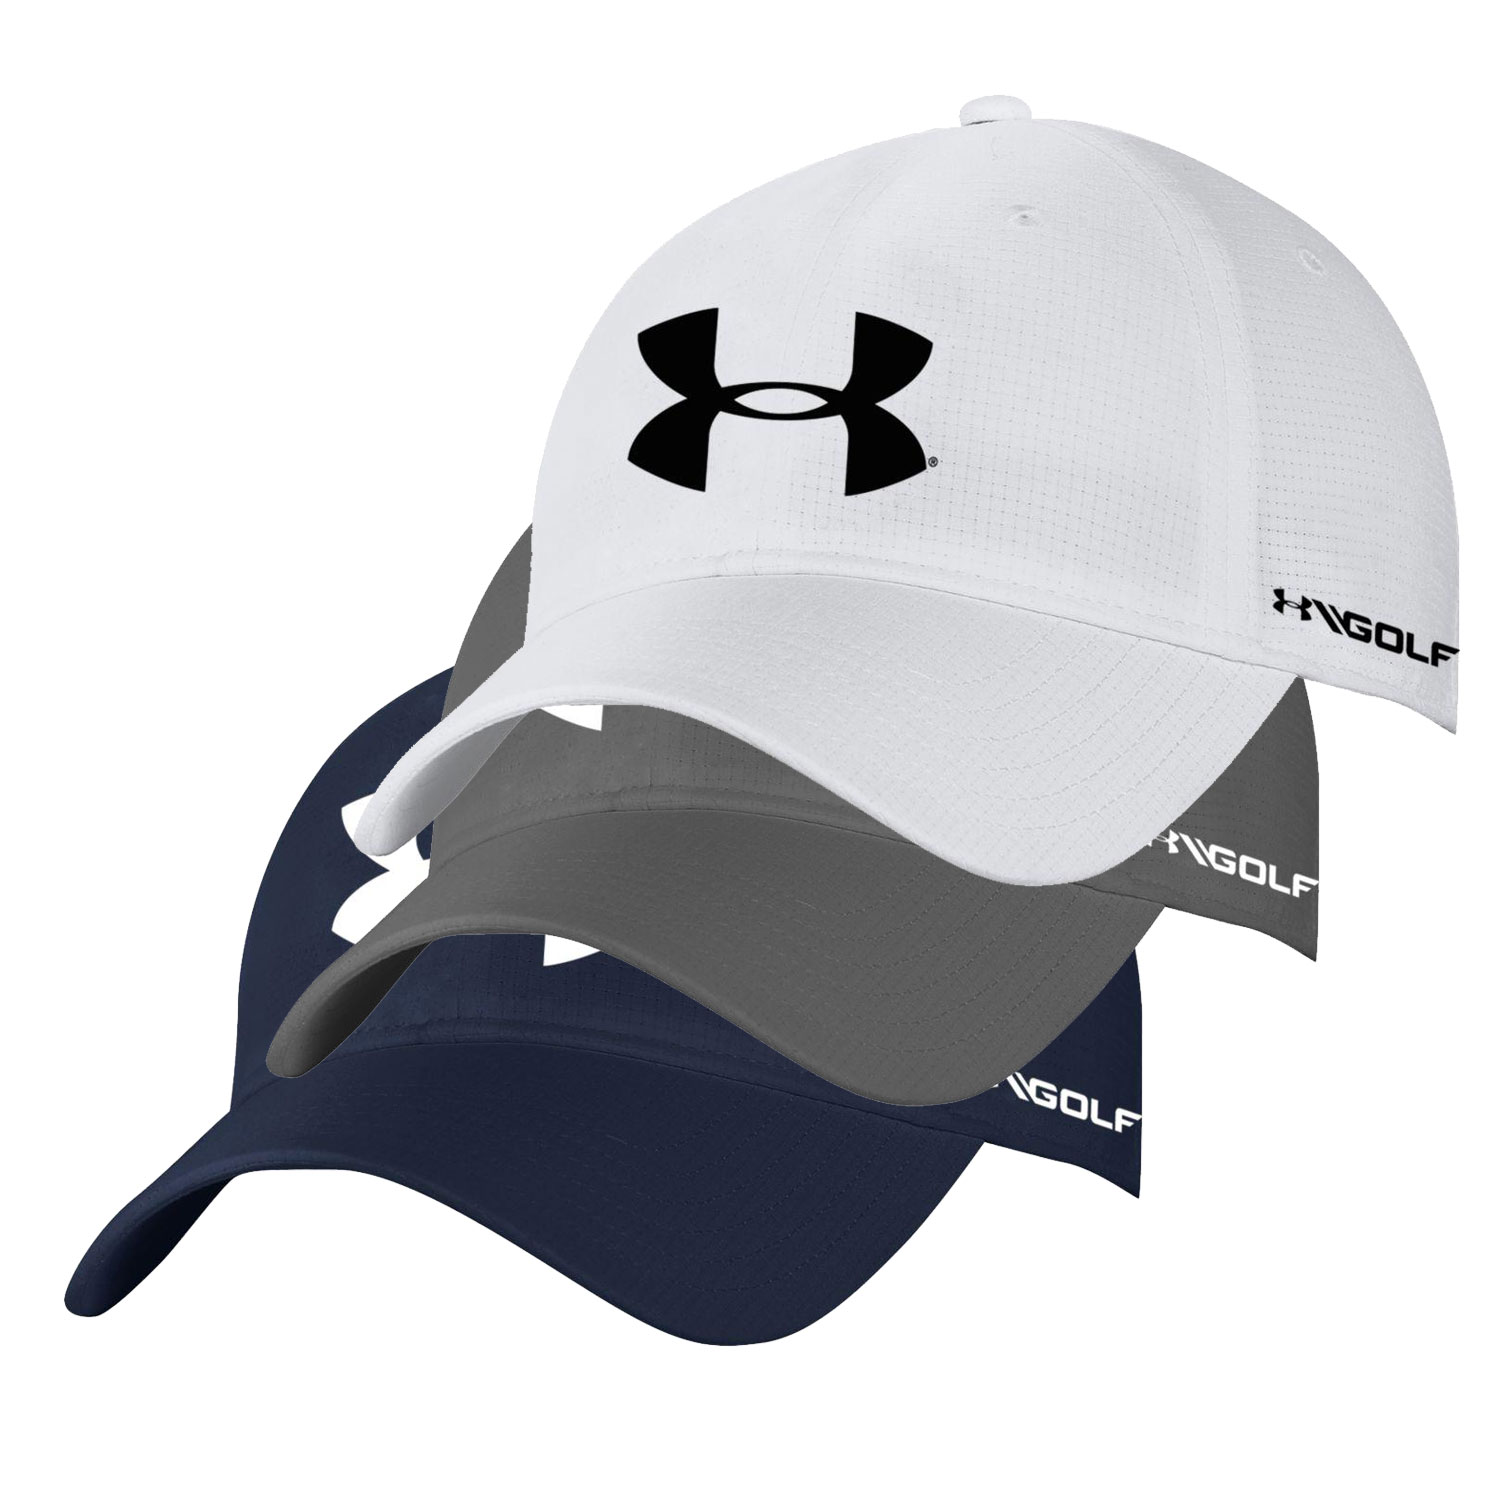 Under Armour Men's Airvent Adjustable Cap